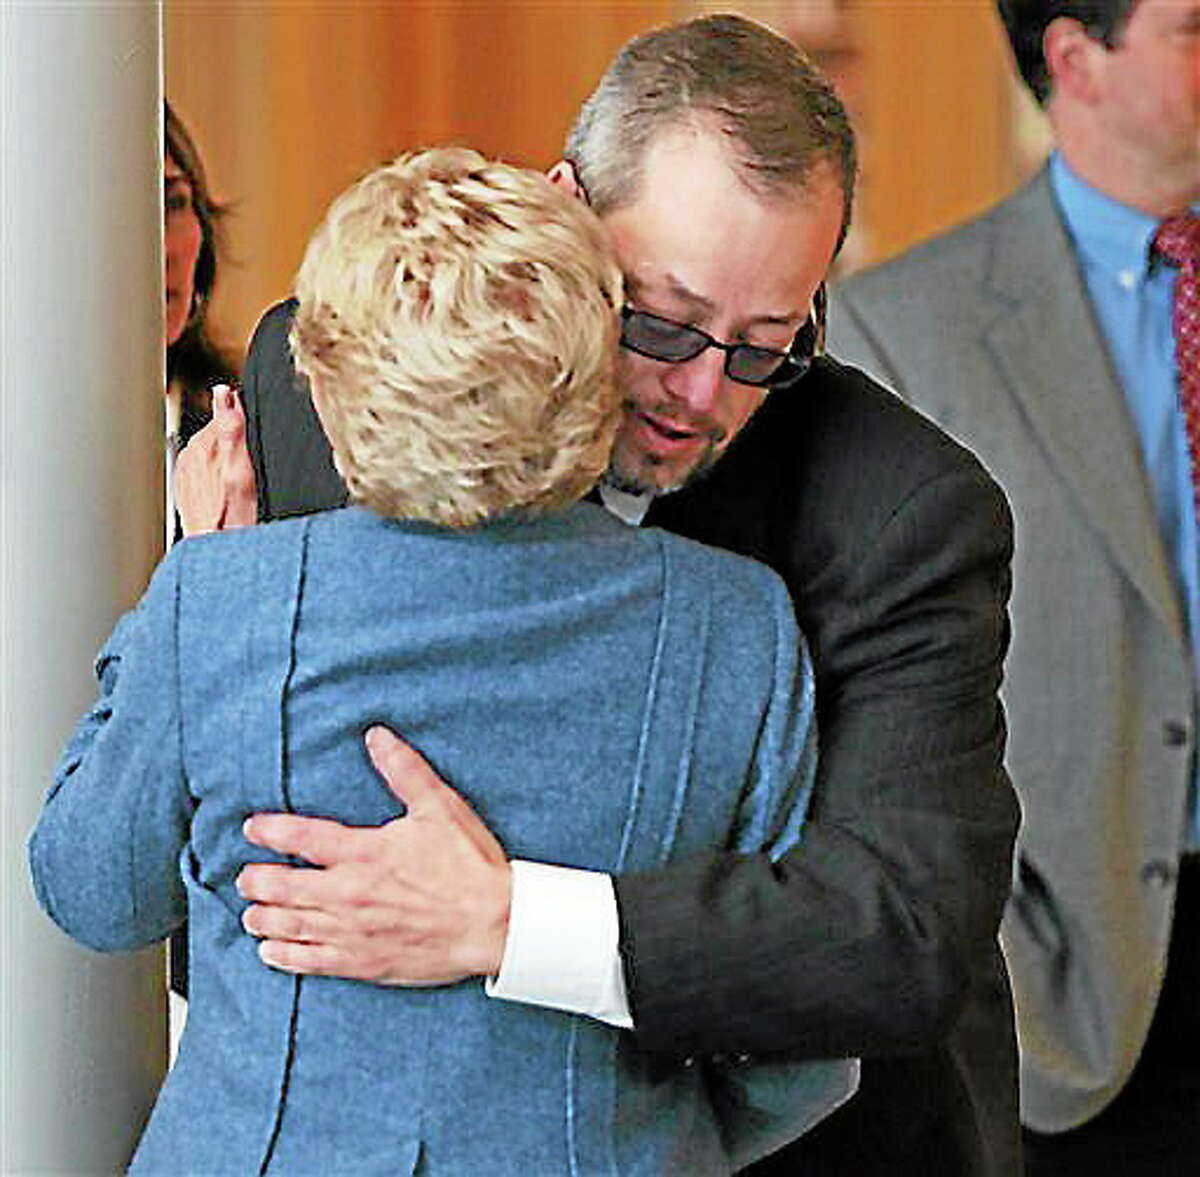 Gardner Trask, chairman of the Danvers Board of Selectman, embraces an unidentified woman inside Danvers High School prior to a press conference by Jonathan Blodget, Essex District Attorney, Wednesday, Oct. 23, 2013 where he announced the homicide death of Danvers math teacher Colleen Ritzer at Danvers High School in Danvers, Mass. A 14-year-old Massachusetts high school student is facing a murder charge in the death of the teacher found dead in the woods behind the school. (AP Photo/Boston Herald, Mark Garfinkel) BOSTON GLOBE OUT; METRO BOSTON OUT; MAGS OUT; ONLINE OUT NO SALES